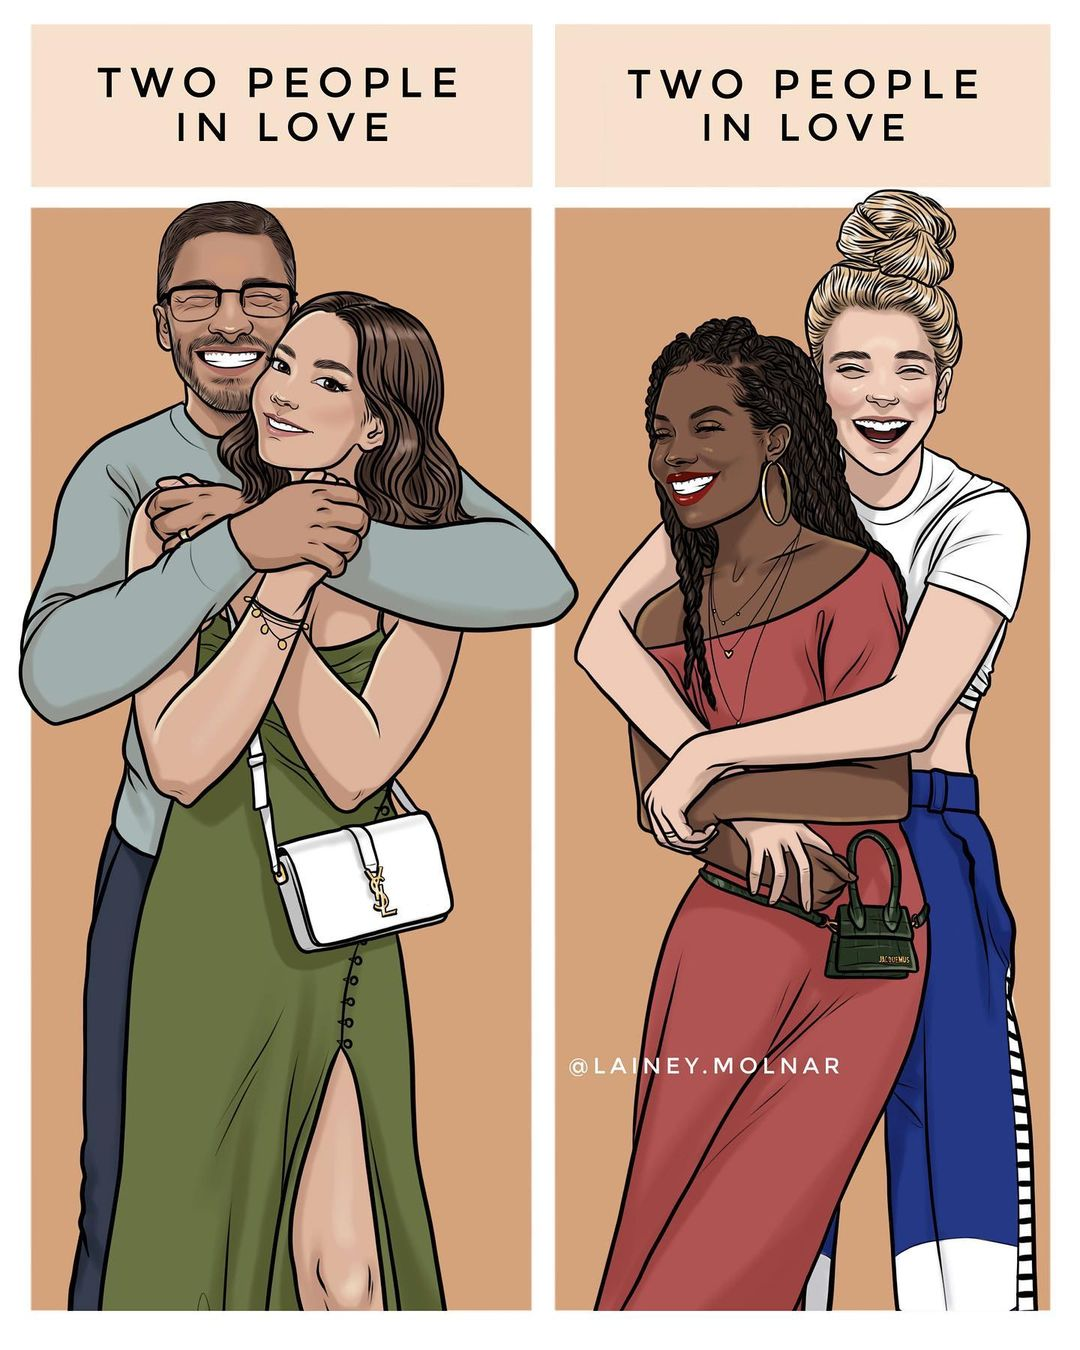 Artist Lainey Molnar creates an illustration showing two couples in love.